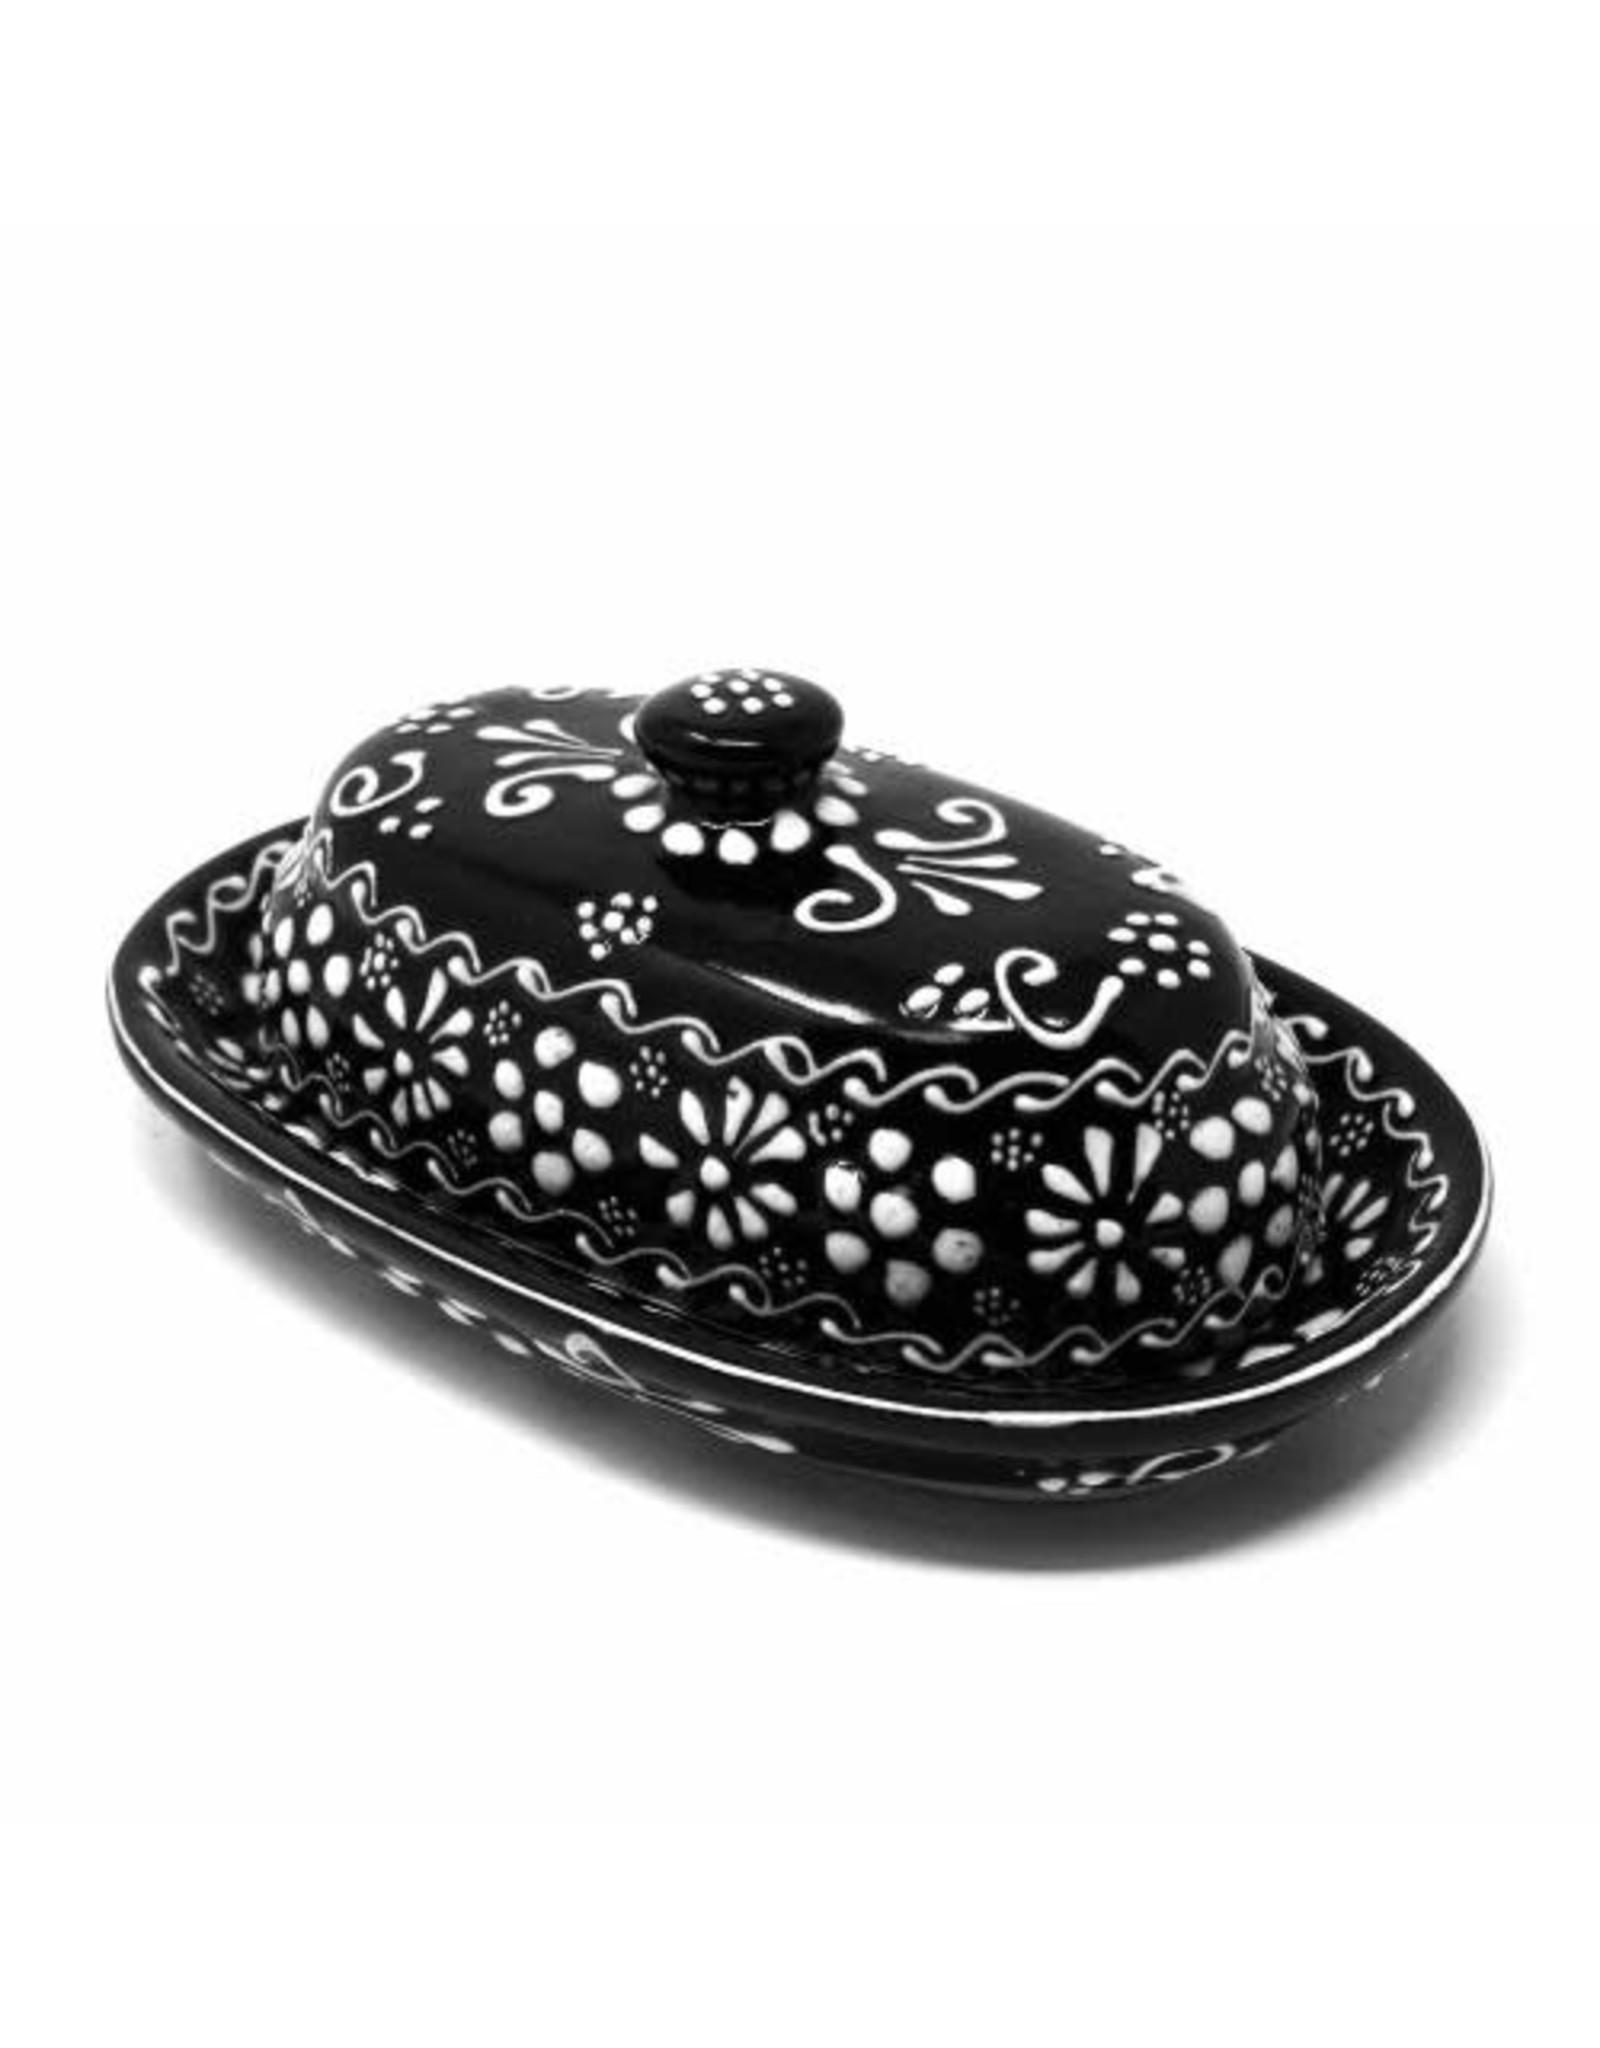 Butter Dish, Ink, Mexico